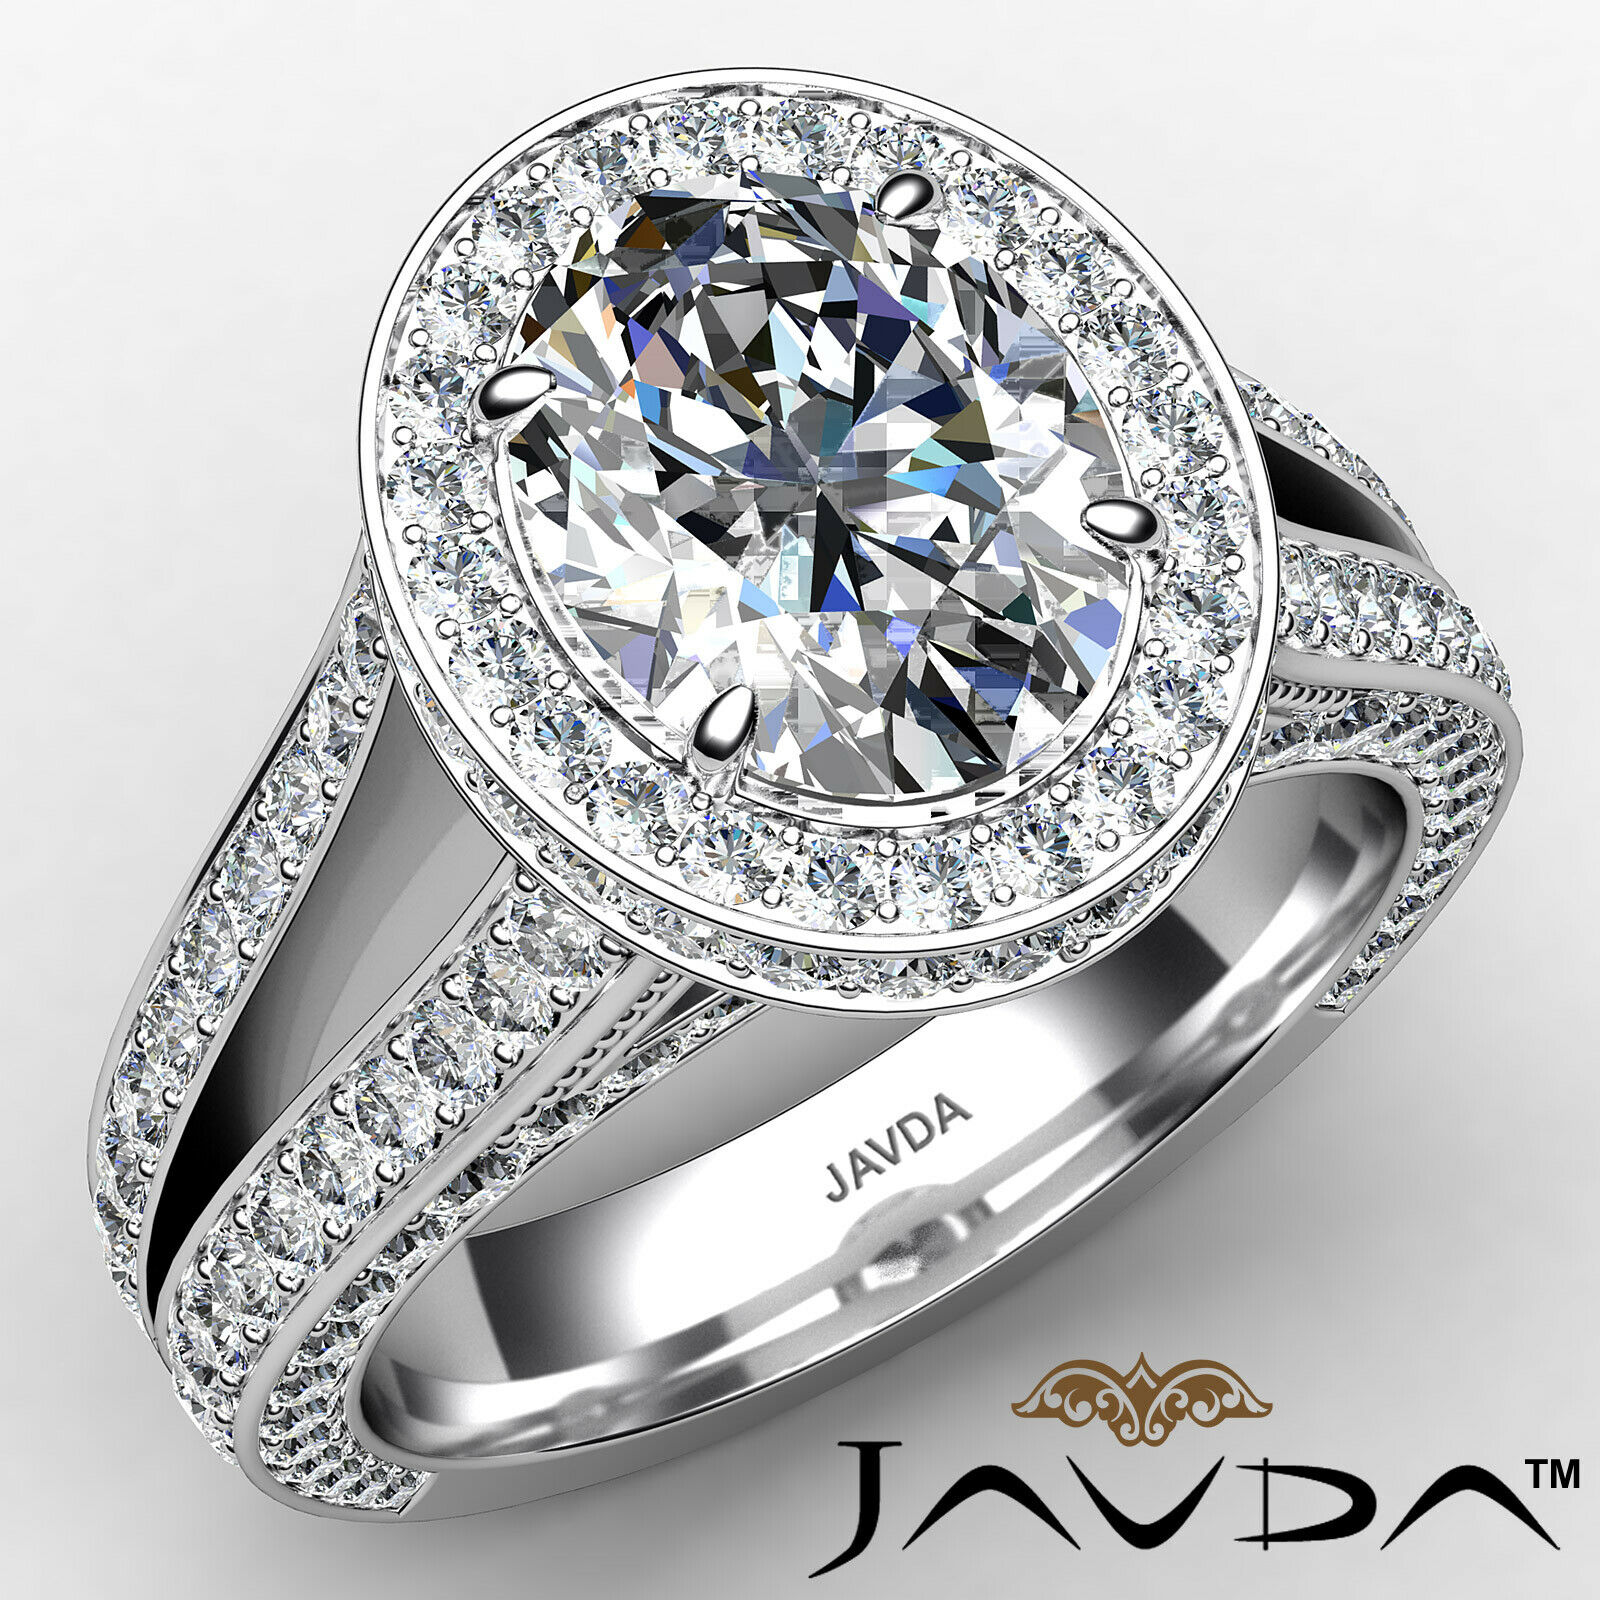 Halo Oval Diamond Engagement Ring GIA Certified F Color & SI1 clarity 2.31 ctw